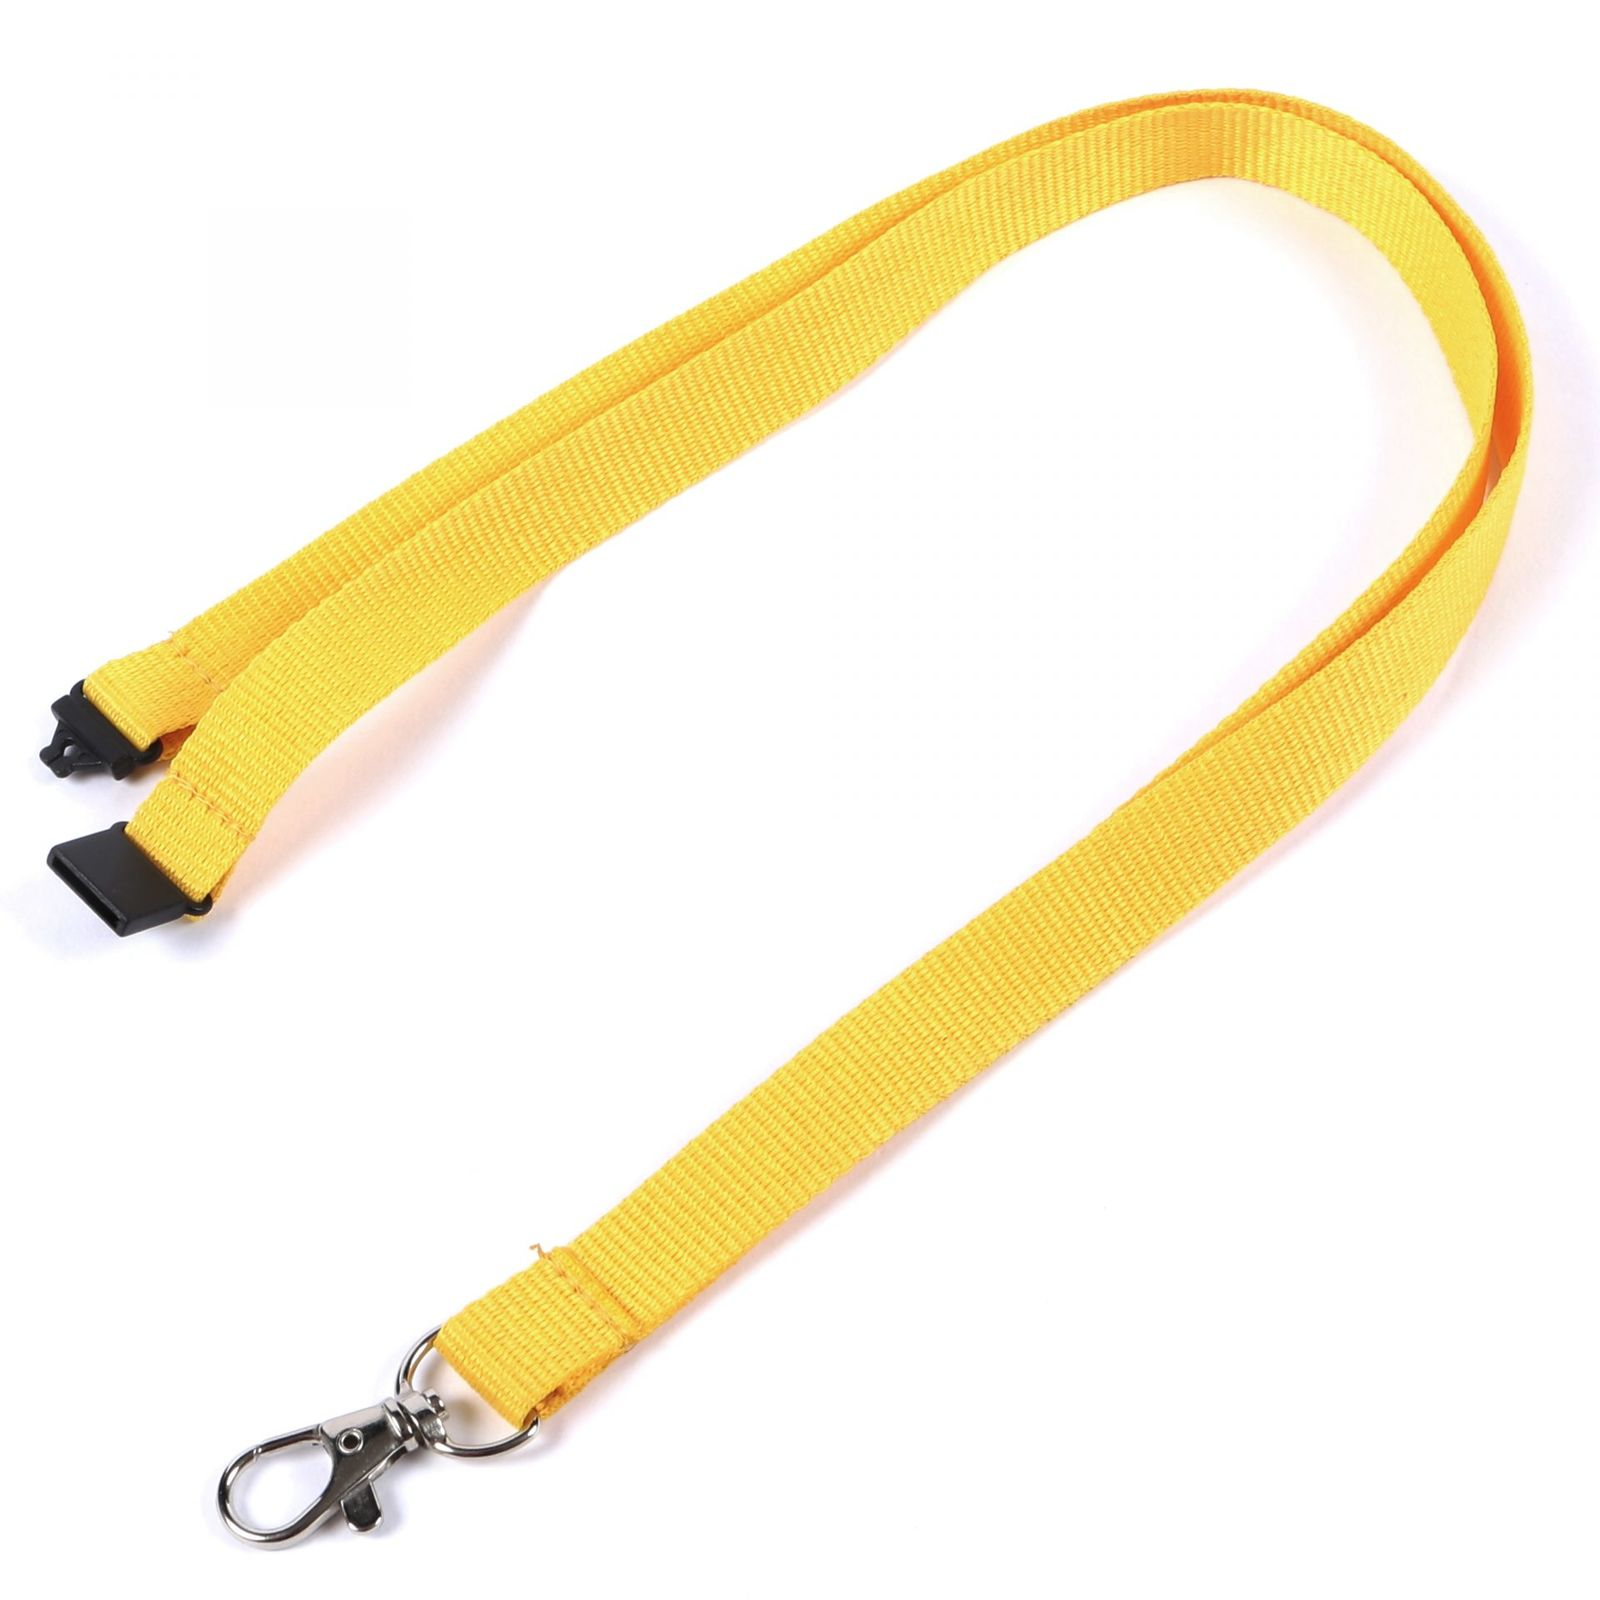 Buy Plain Yellow Lanyards on Lanyards Direct Today!